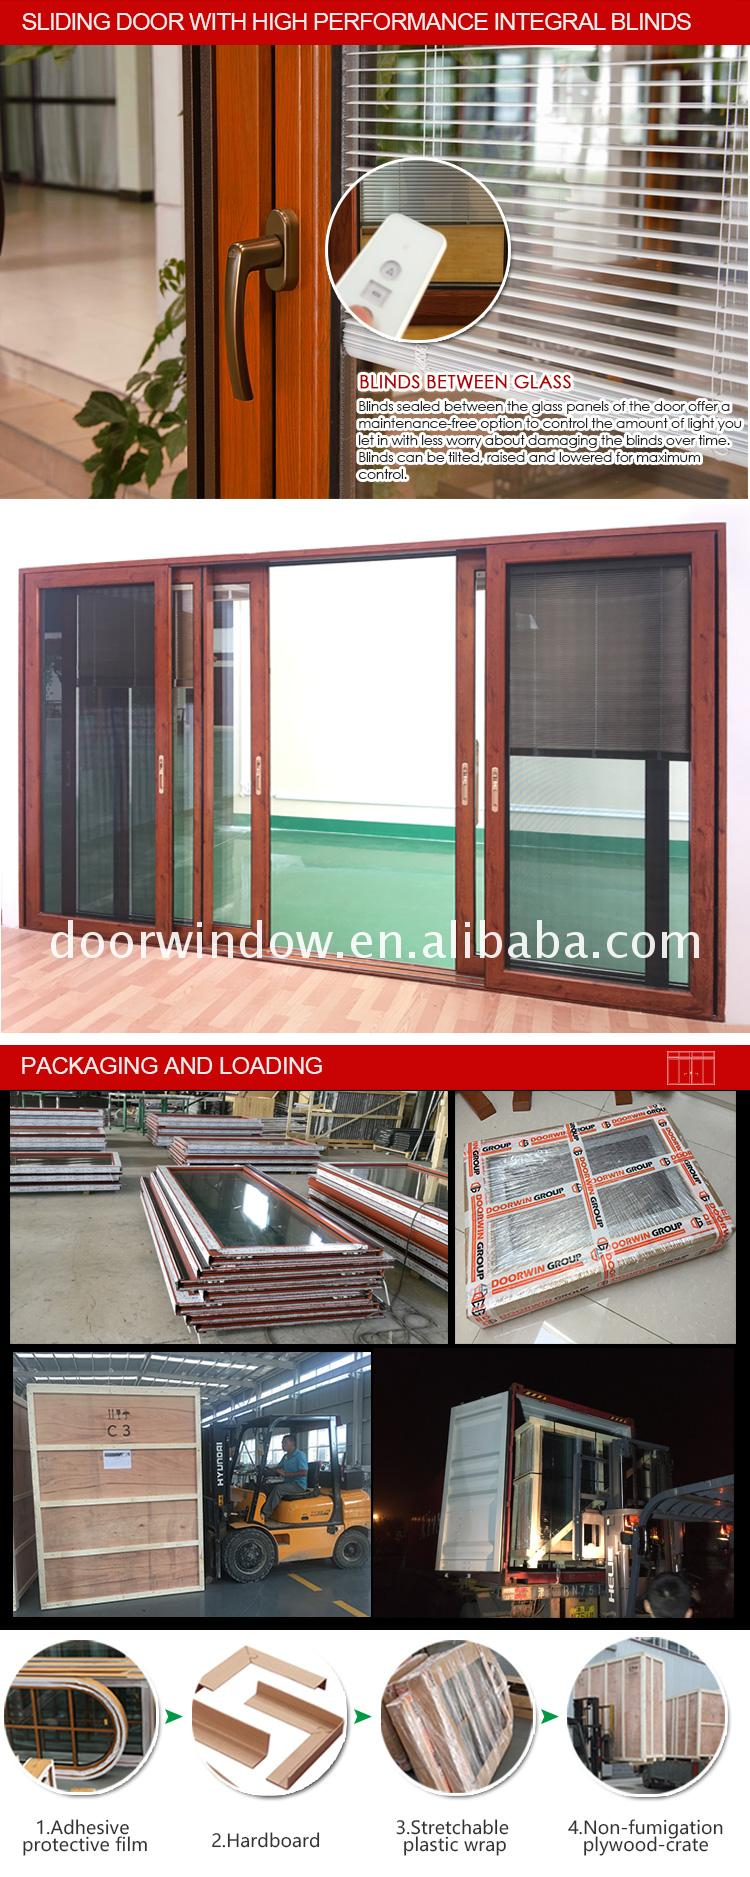 Accordion sliding door and window 70series glass 6063-t5